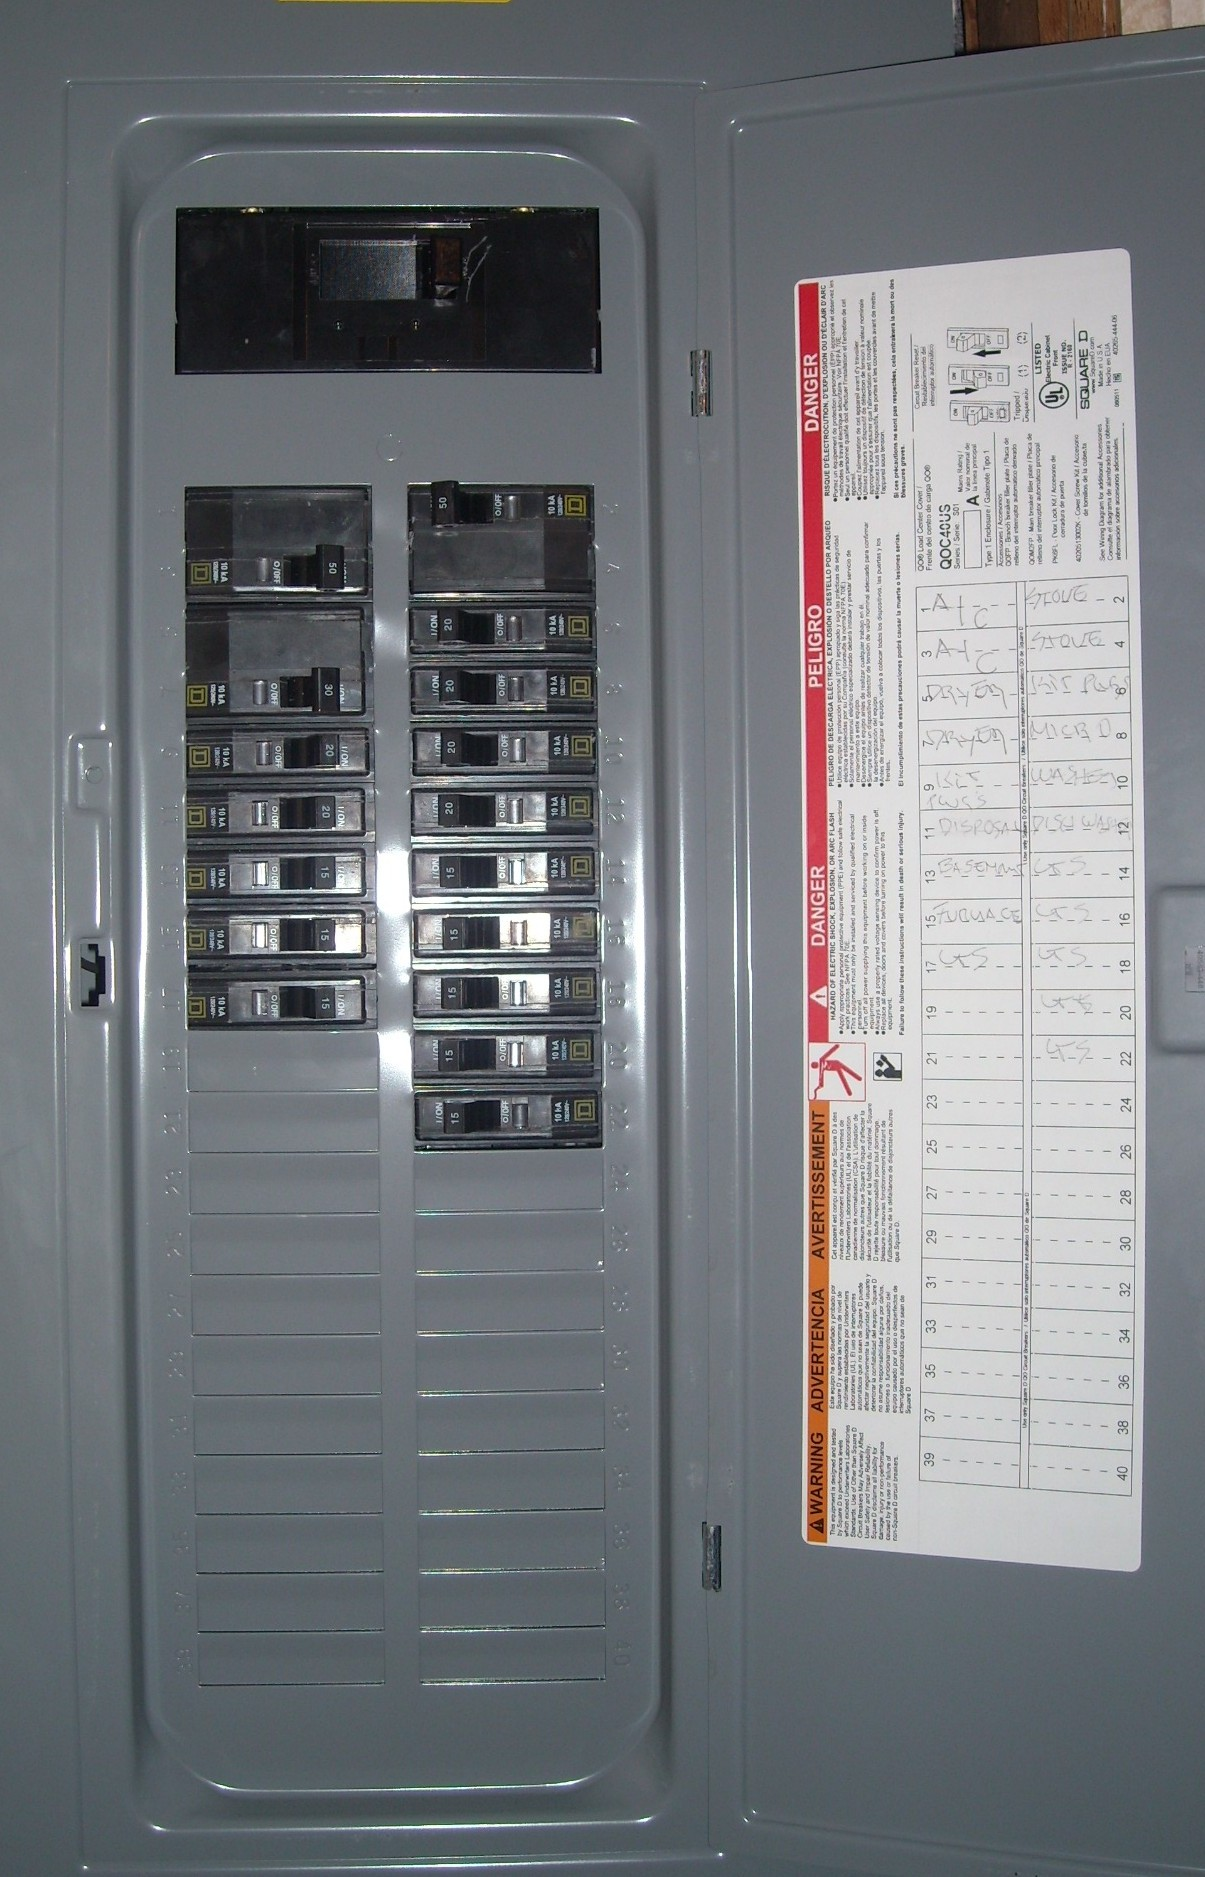 Hot Water Heaters Electric Fuse Box Wiring Diagram Online Whirlpool Heater Library Tub